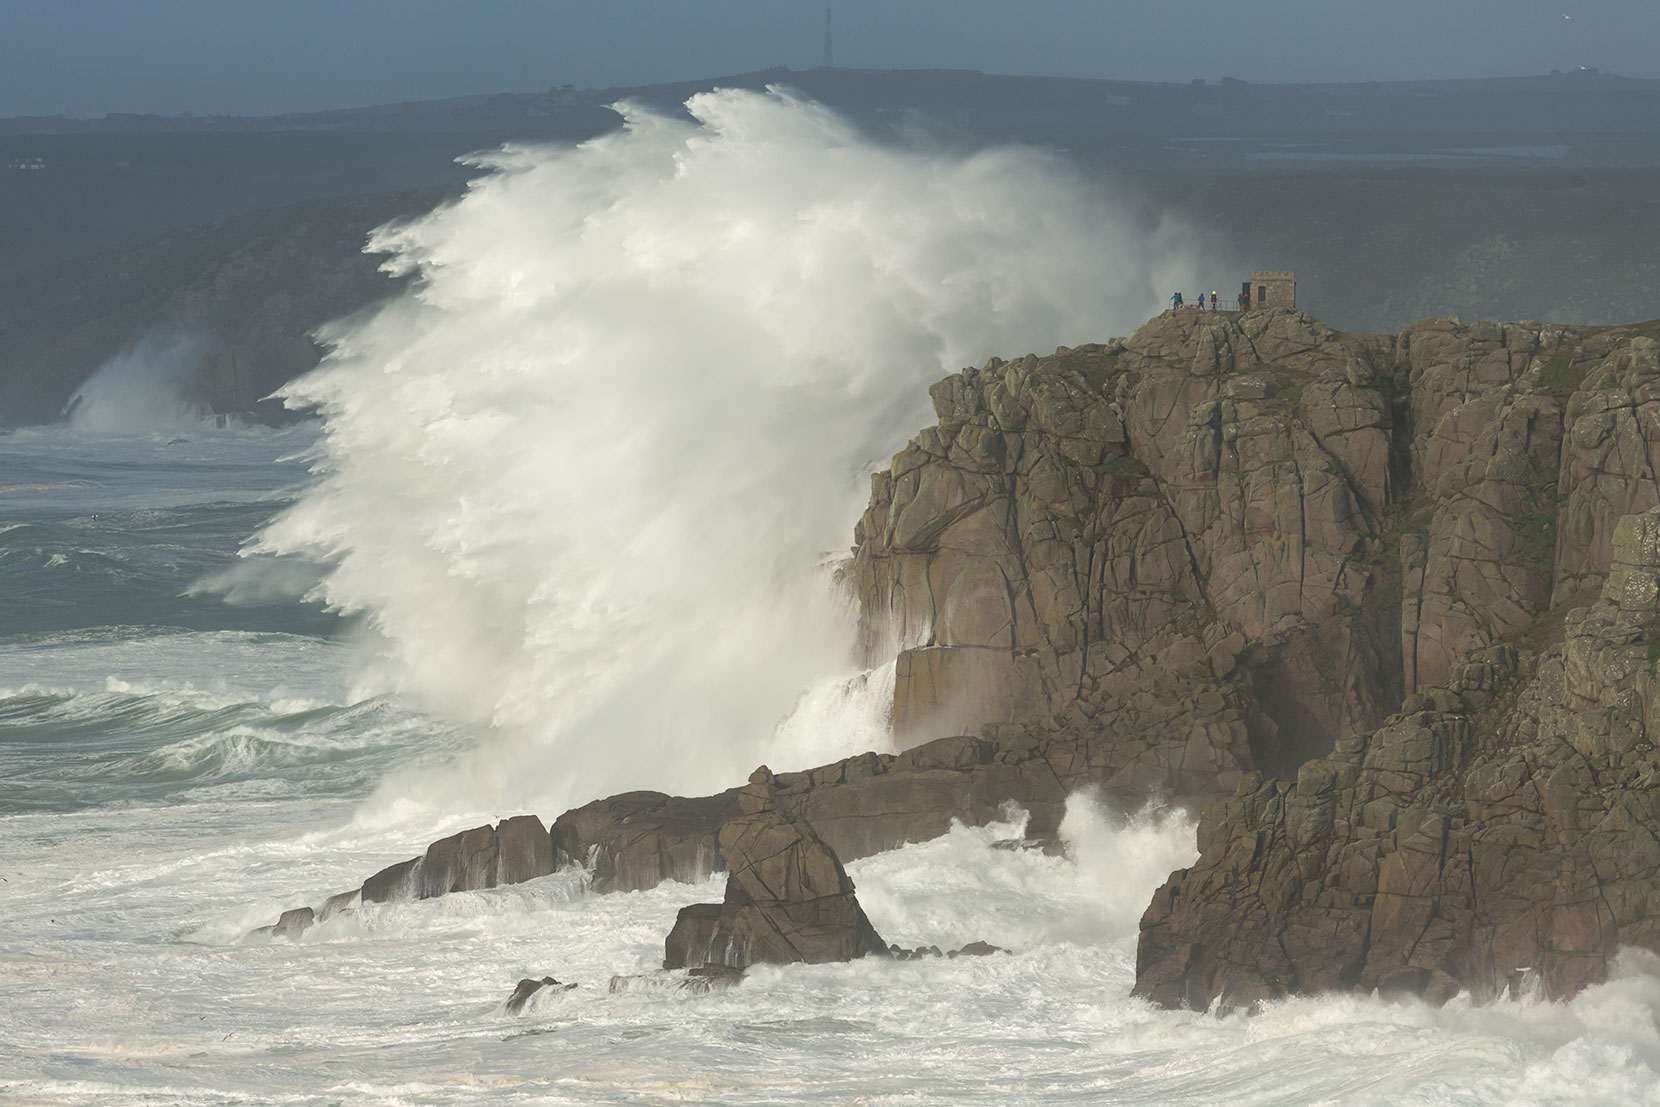 Storm Imogen at Land's End